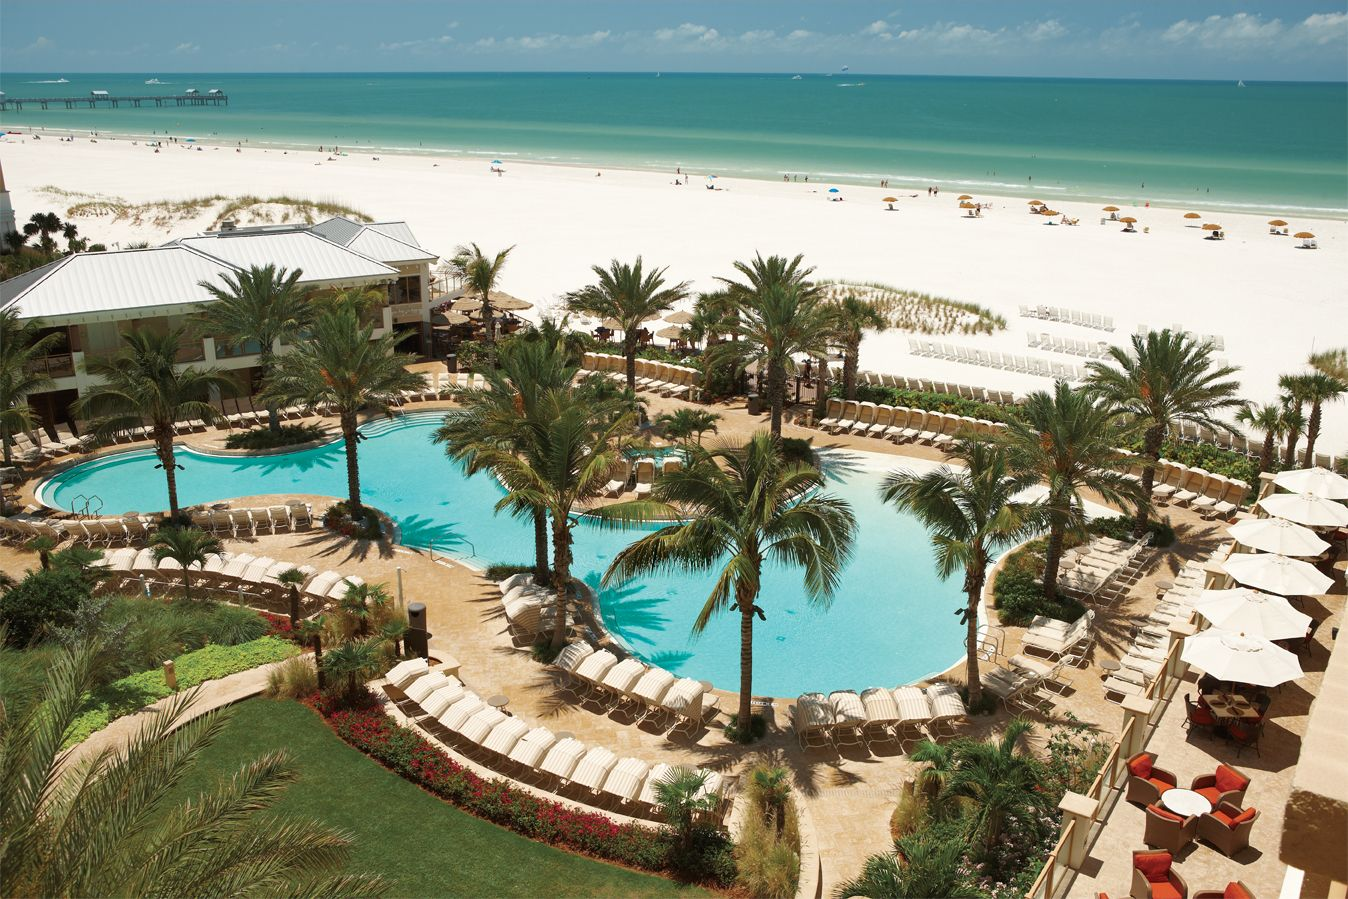 5 of the best family beach vacation destinations in the US